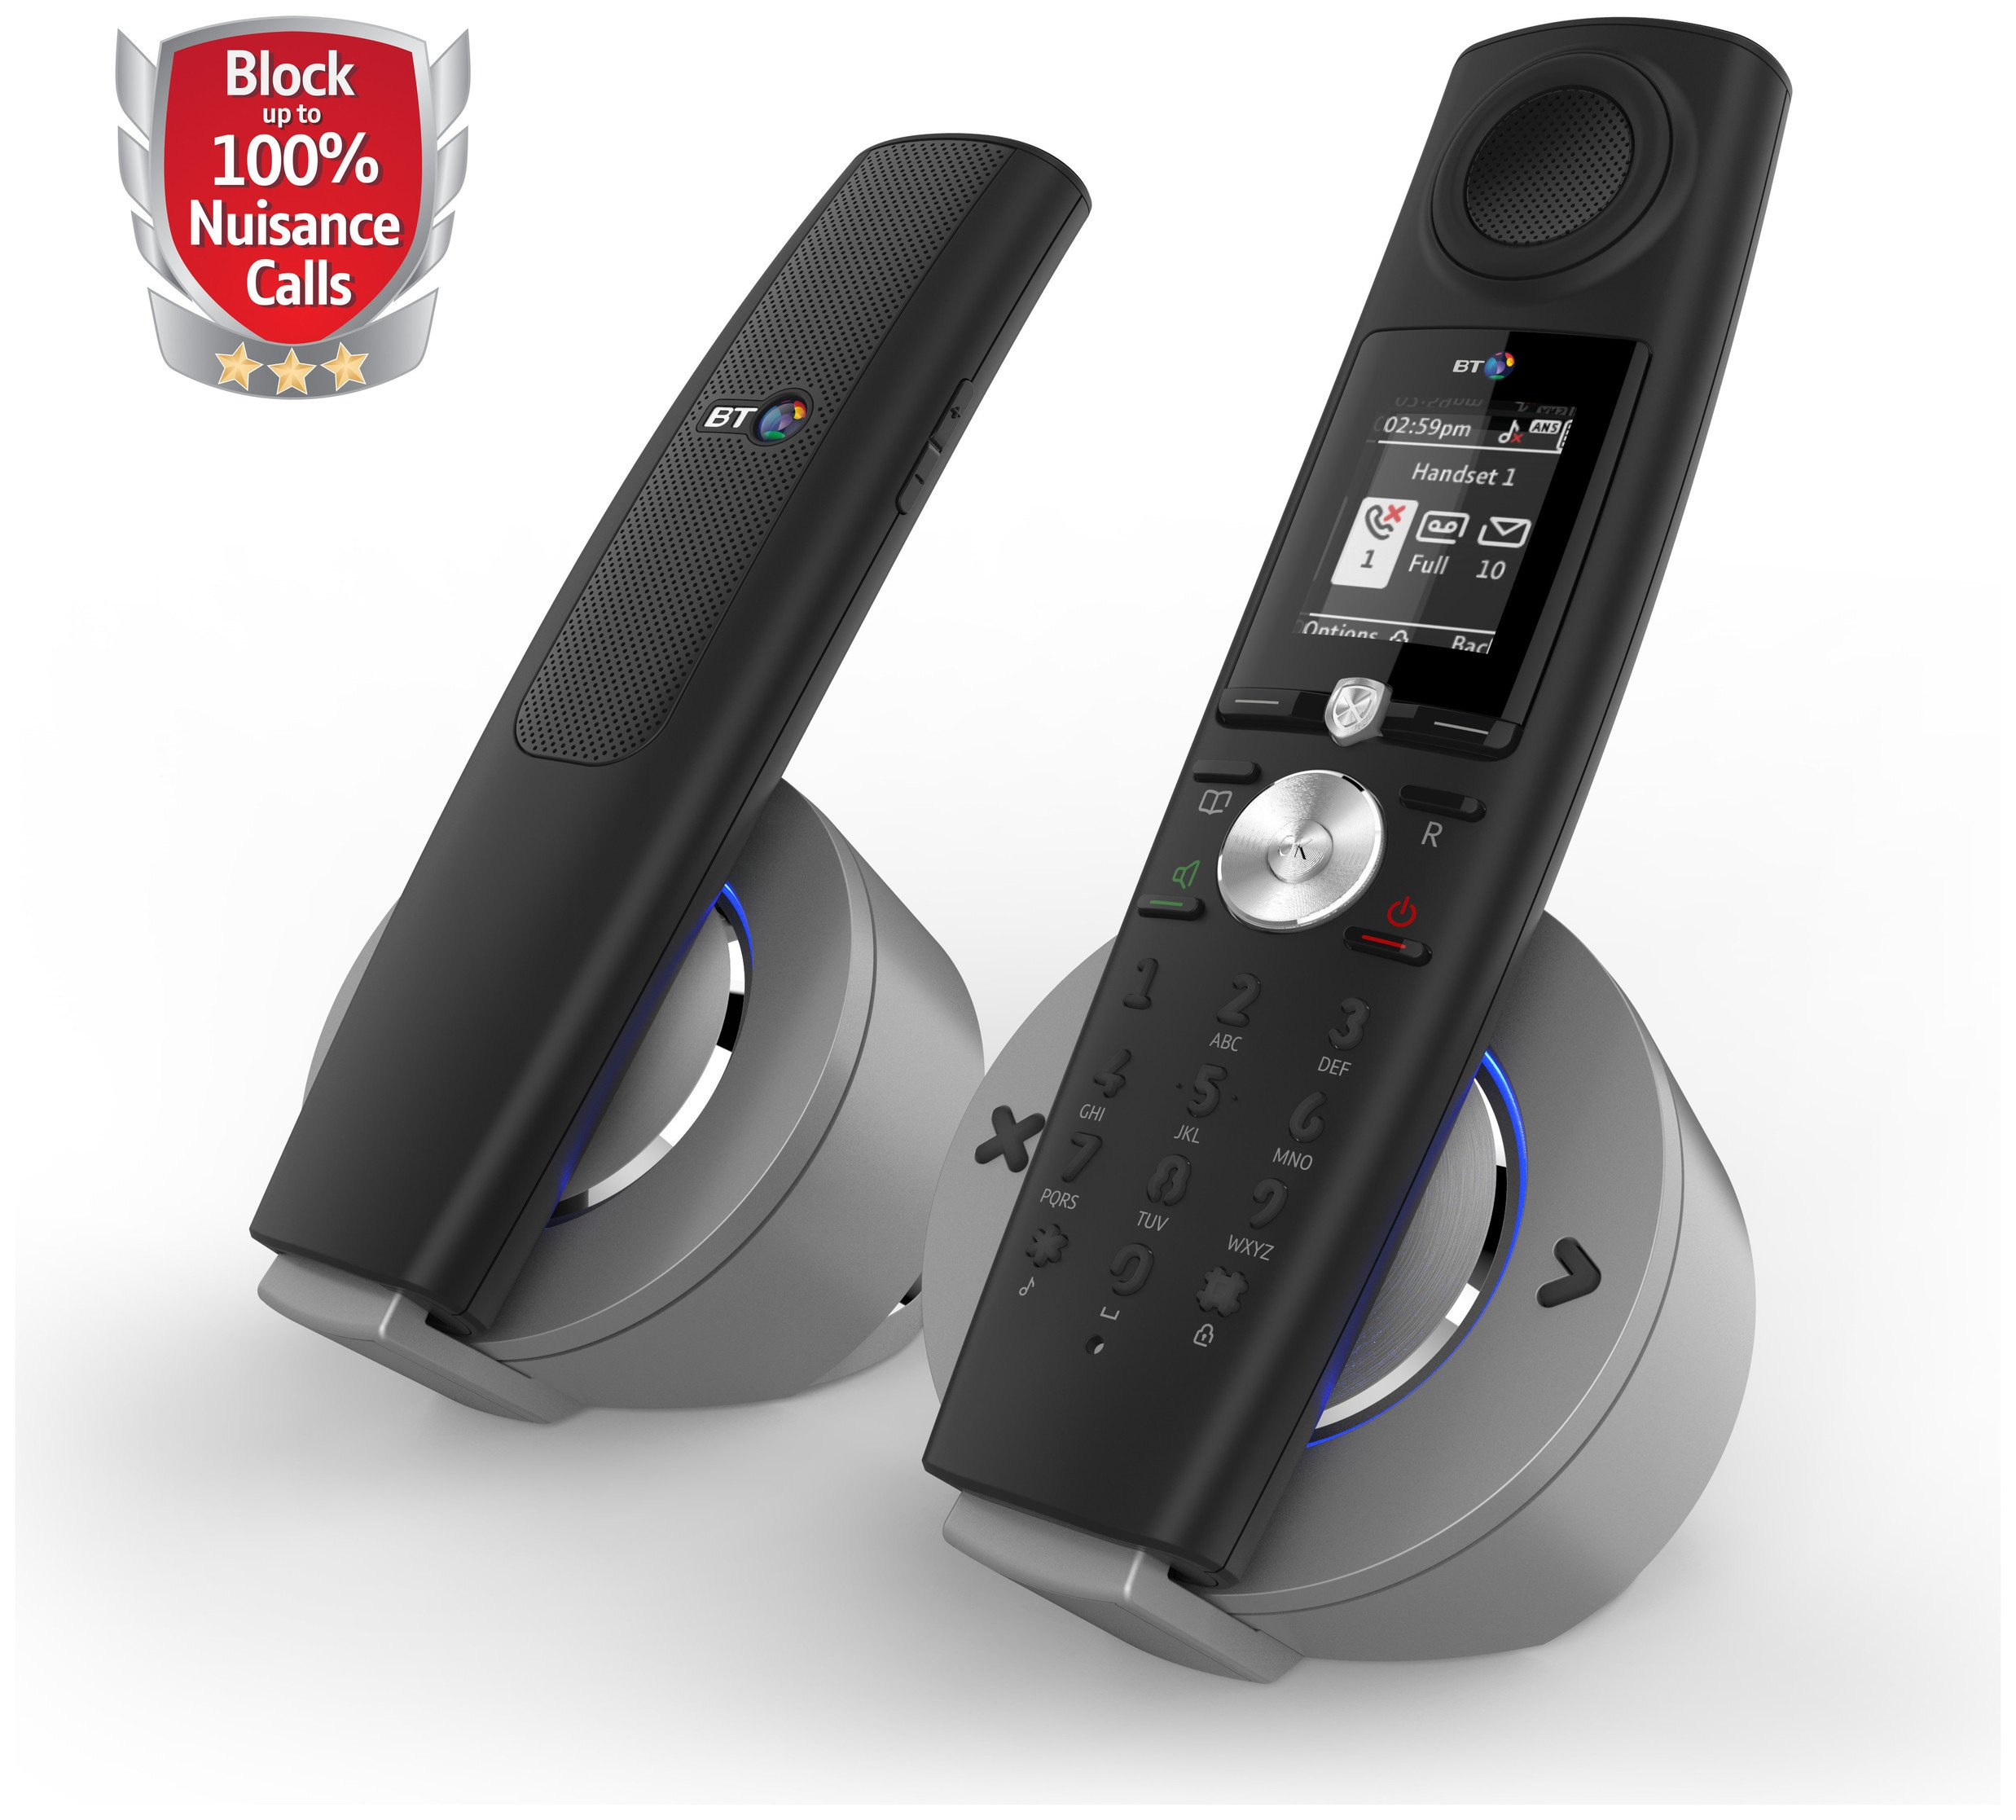 Image of BT Halo Cordless Telephone with Answer Machine - Twin